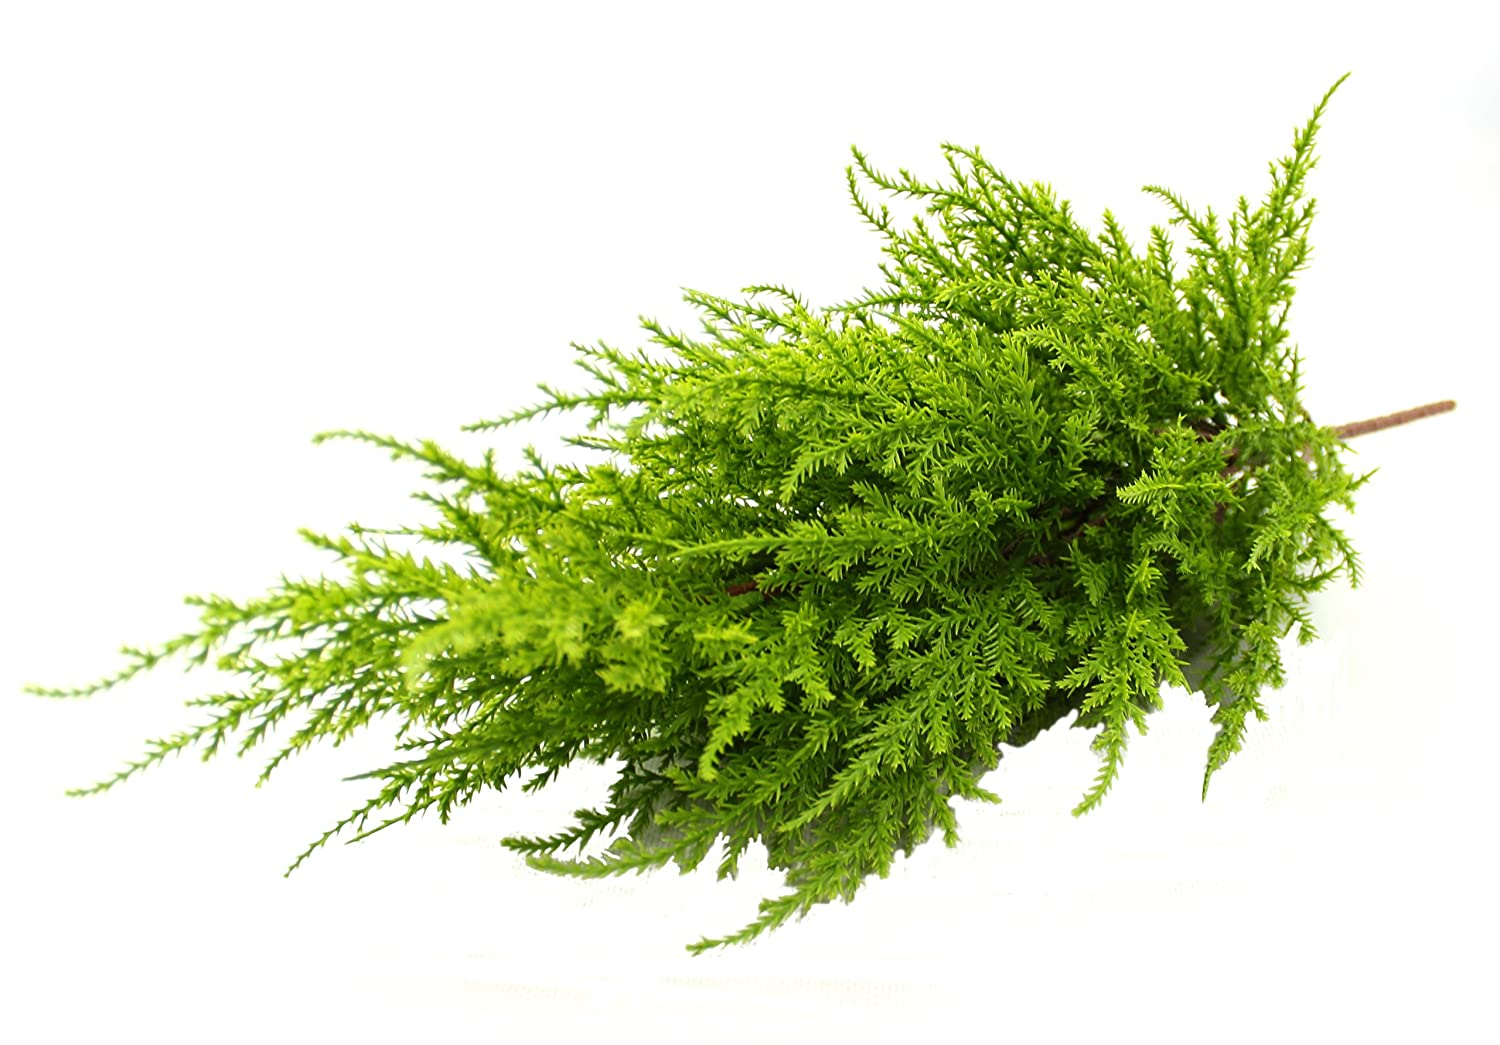 Artificial 56cm High Mini Cedar Pine Conifer Tree Plant – Outdoor Use – Hanging Baskets, Window Boxes & Patio Planters … (Green) Blooming Artificial